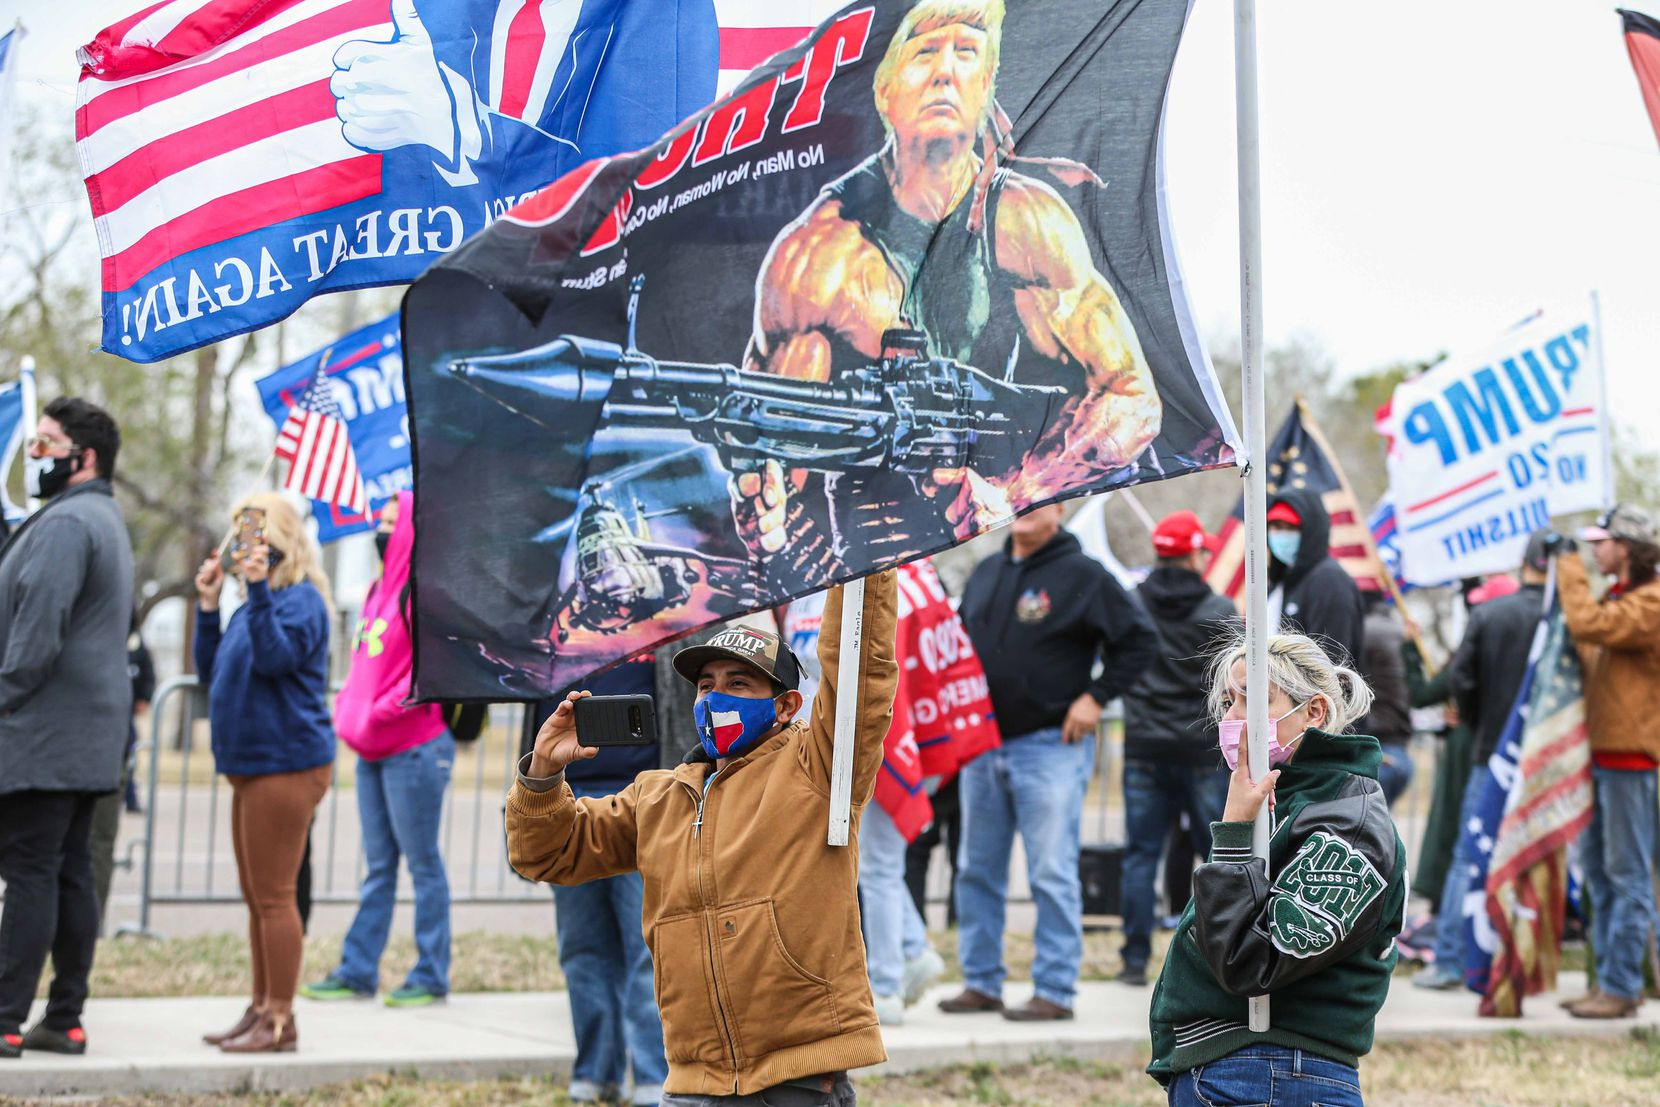 President Donald Trump supporters at S 10th St and Bales Rd during a rally as Trump is scheduled to visit part of the wall built under his mandate in McAllen on Tuesday, January 12, 2021.